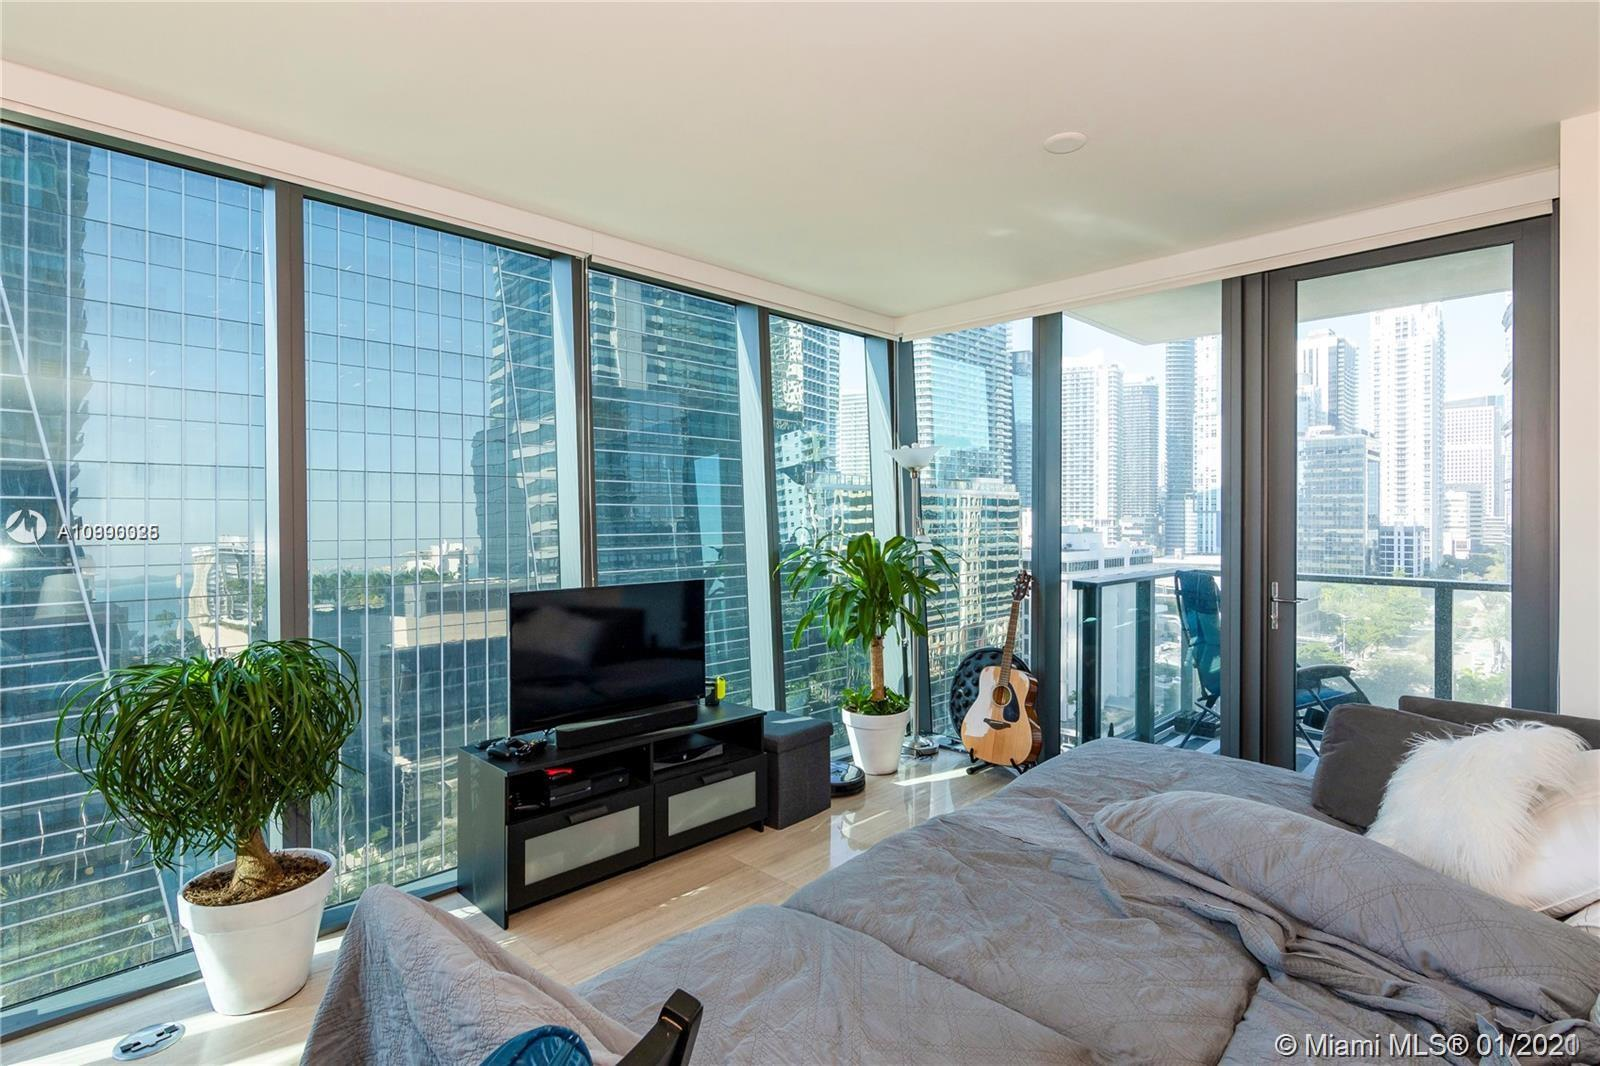 Sophisticated 1 bed , 1.5 bath corner unit at Echo Brickell Residences, a boutique cond designed by acclaimed architect Carlos Ott, in the heart of Miami, Great City and bay views from the glass-framed balcony with a built in BBQ. Top of the line Sub Zero and Wolf Appliances. Amazing pool and deck with panoramic views of Biscayne Bay, Downtown Miami and South Beach. A state-of-the-art fitness center and spa, resort-style poolside/beverage services and 2 hot tubs. 24/7 concierge, valet, pet walker, car service, internet and cable TV. Walking distance to upscale restaurants, shops, supermarket, pharmacies and metro station.